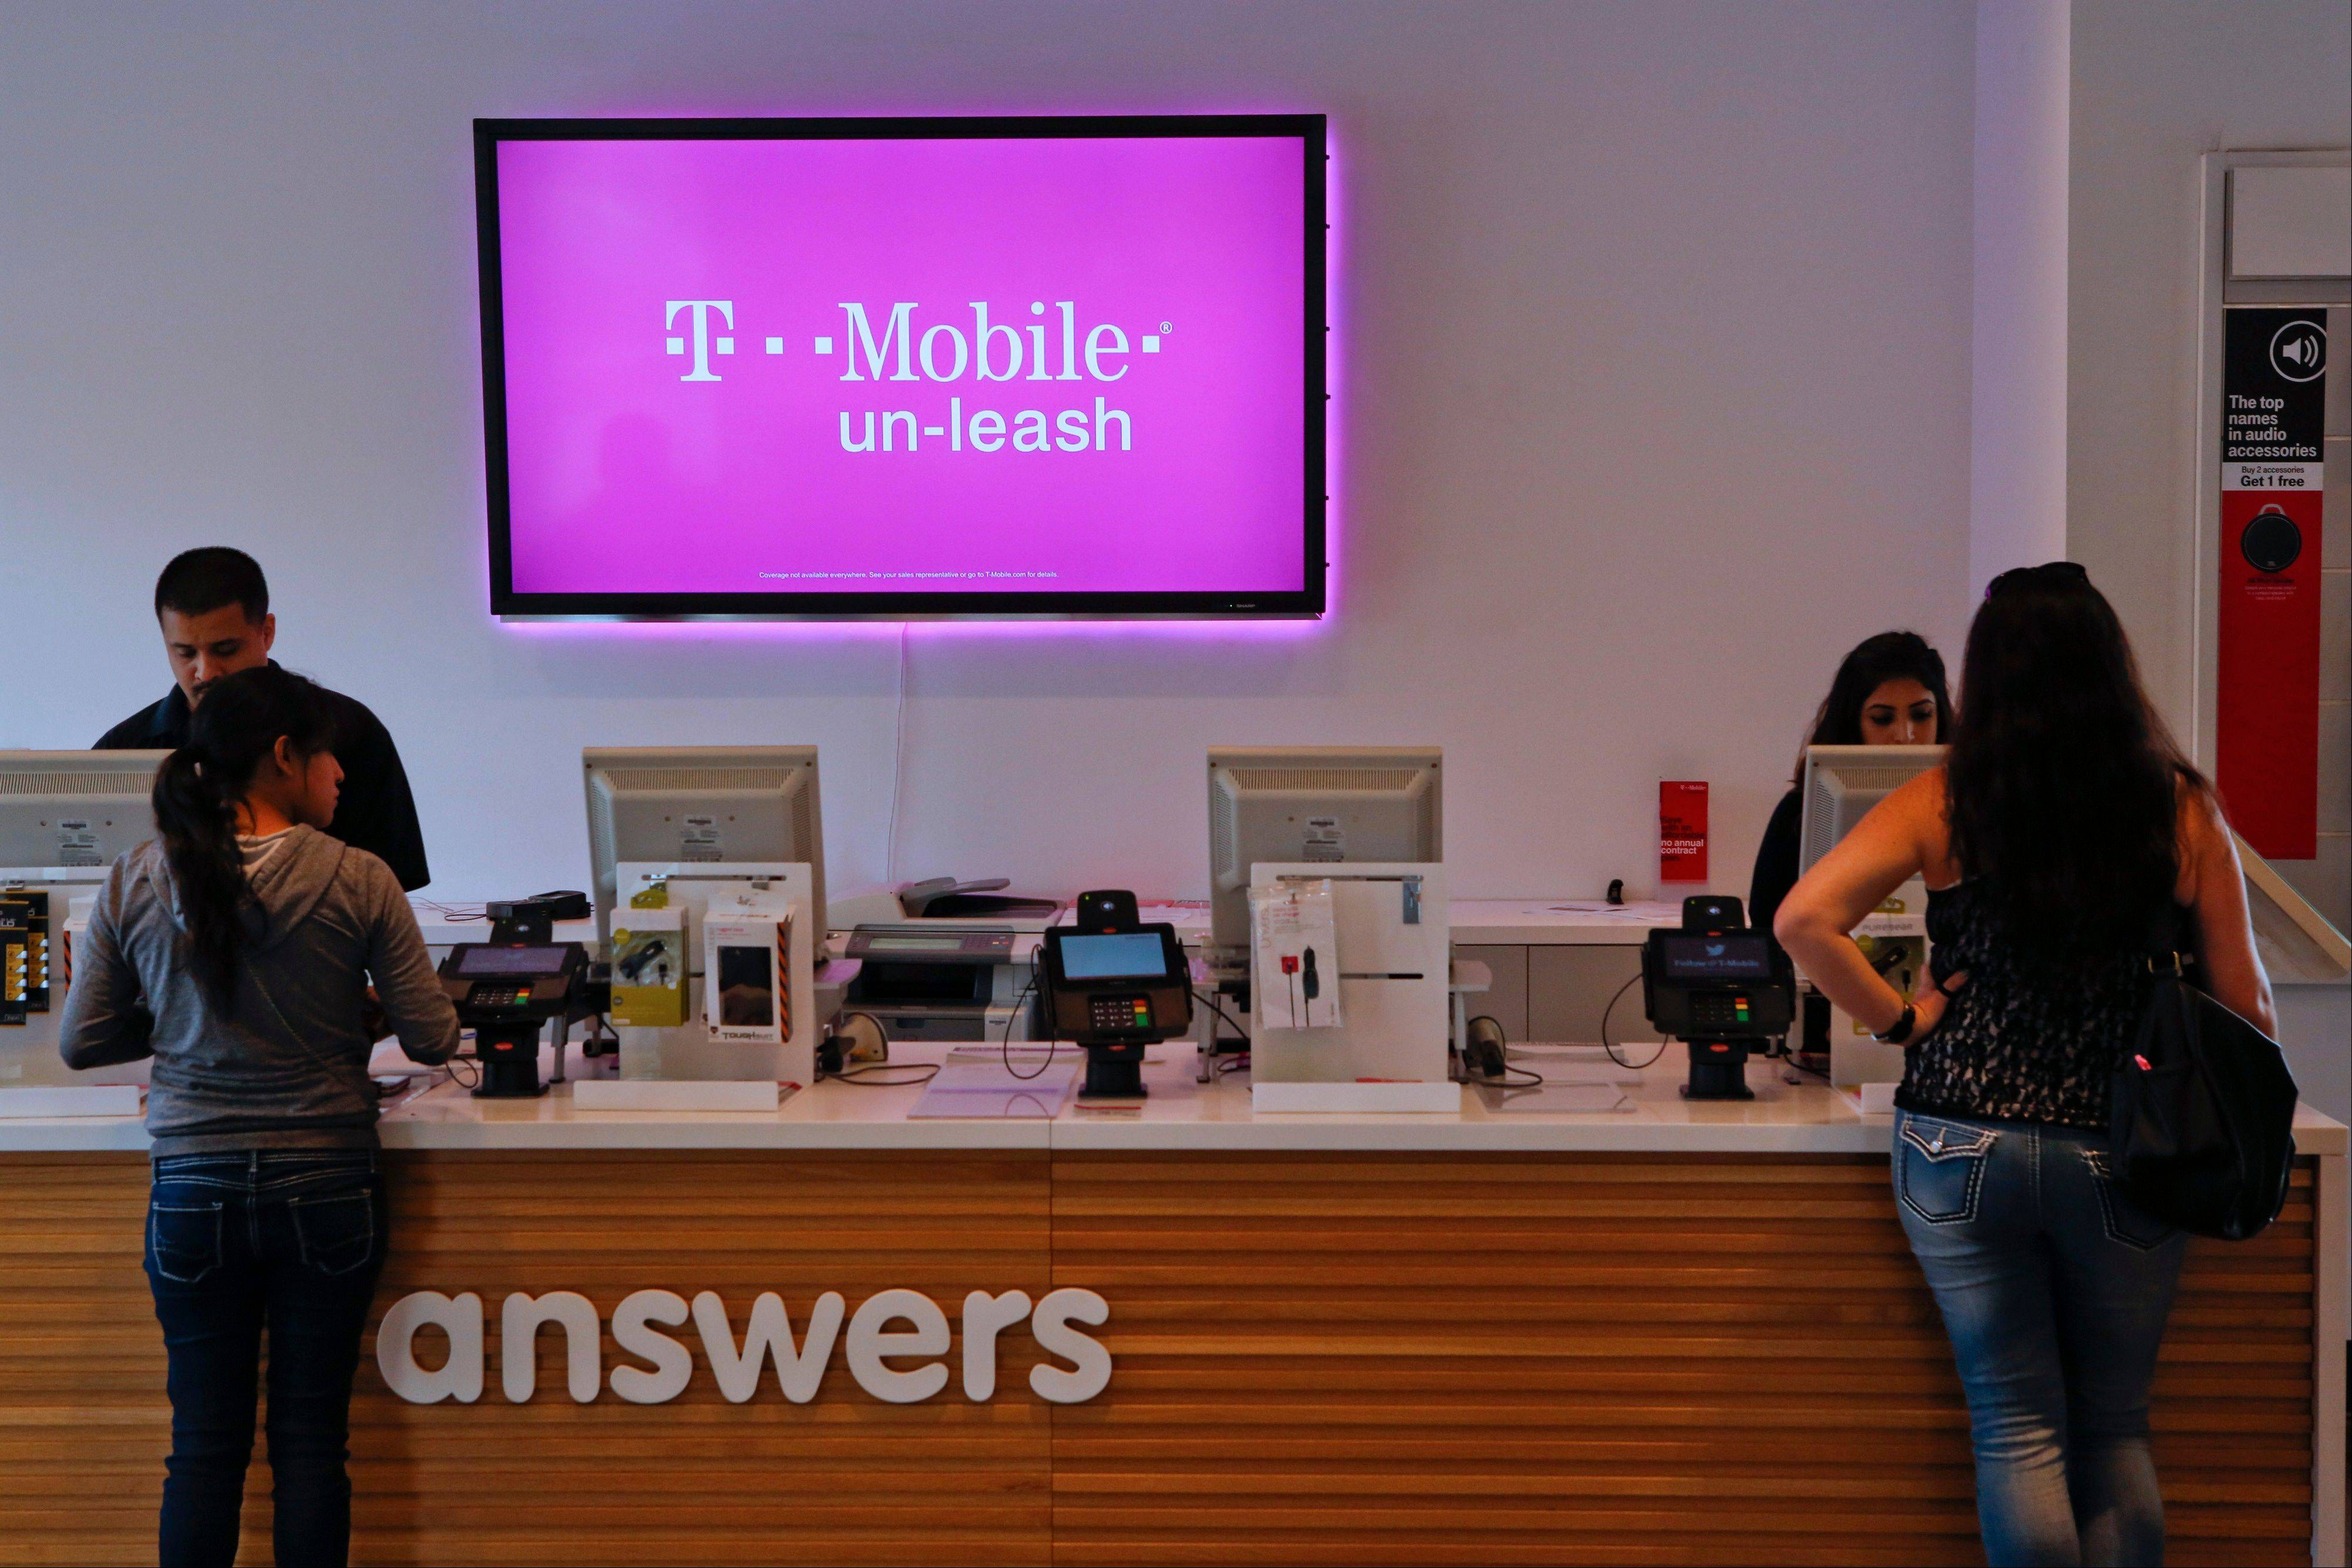 T-Mobile�s initiatives to break wireless industry conventions seem to be working. The No. 4 wireless company said Tuesday that it added 643,000 long-term, good-credit phone customers in the latest quarter. It�s the second straight quarter of increase after years of losses.